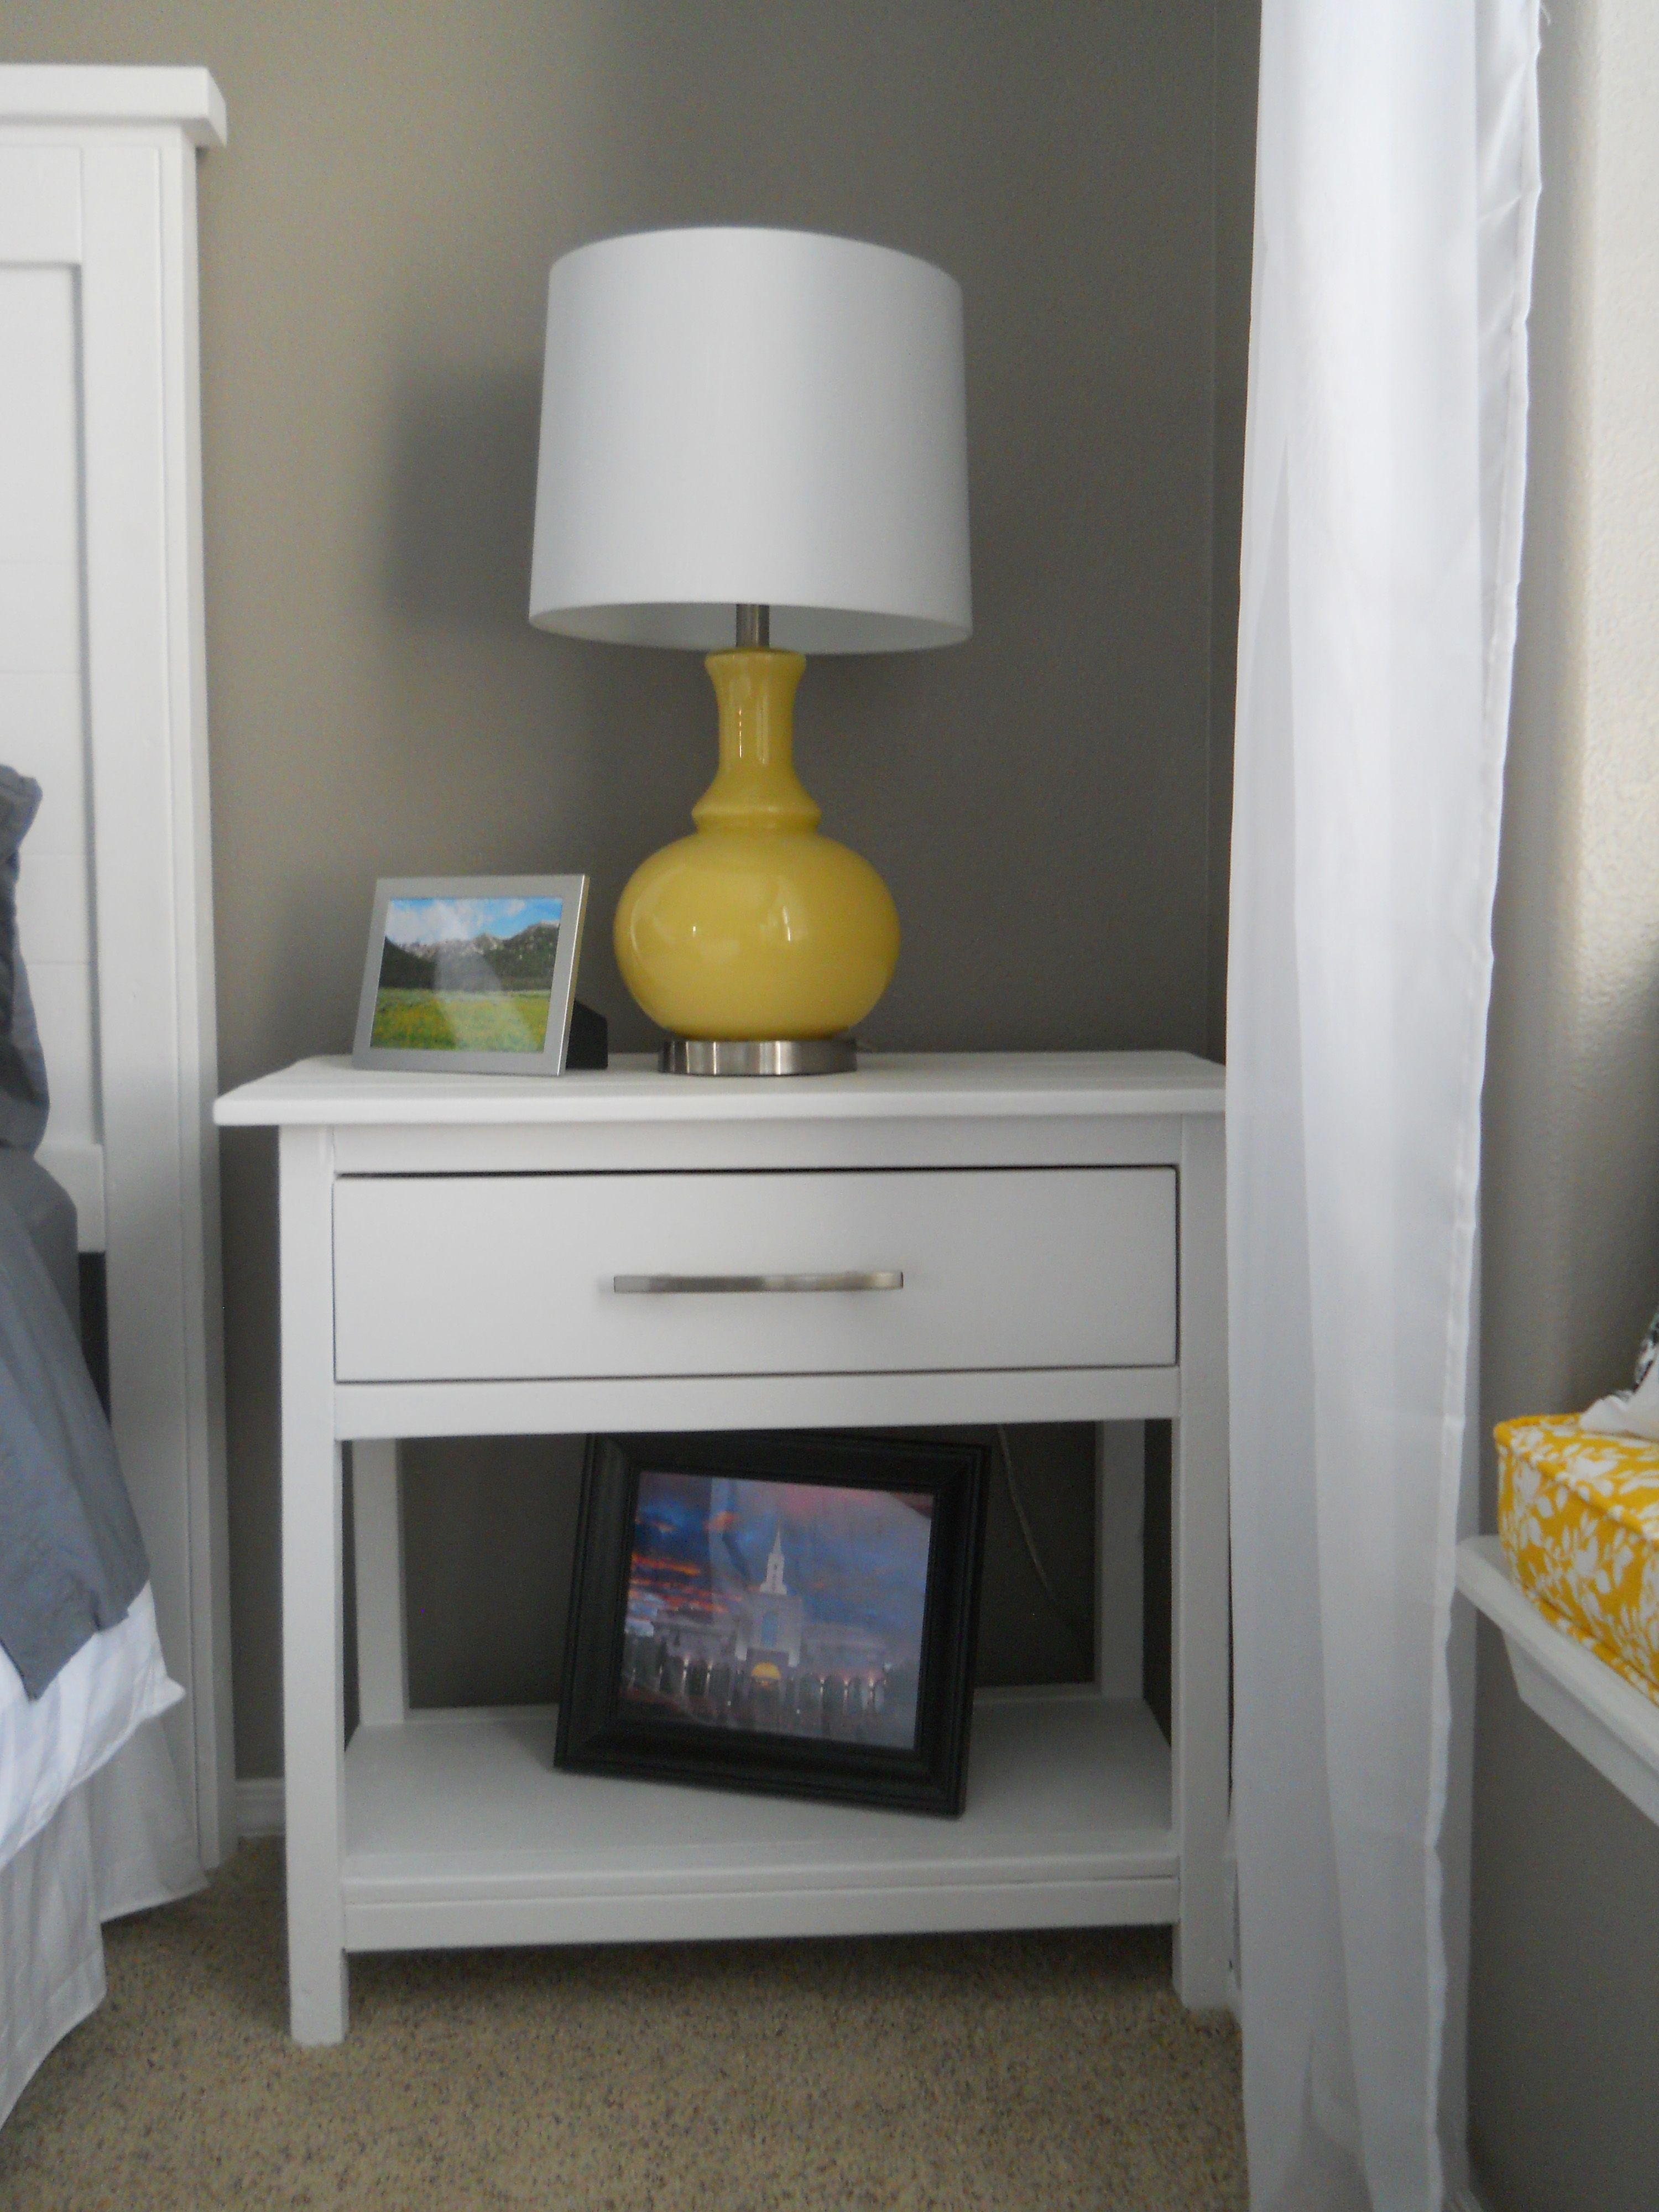 Farmhouse Bedside Table Do It Yourself Home Projects From Ana White With Images Farmhouse Bedroom Set Farmhouse Bedding Sets Simple Bedroom